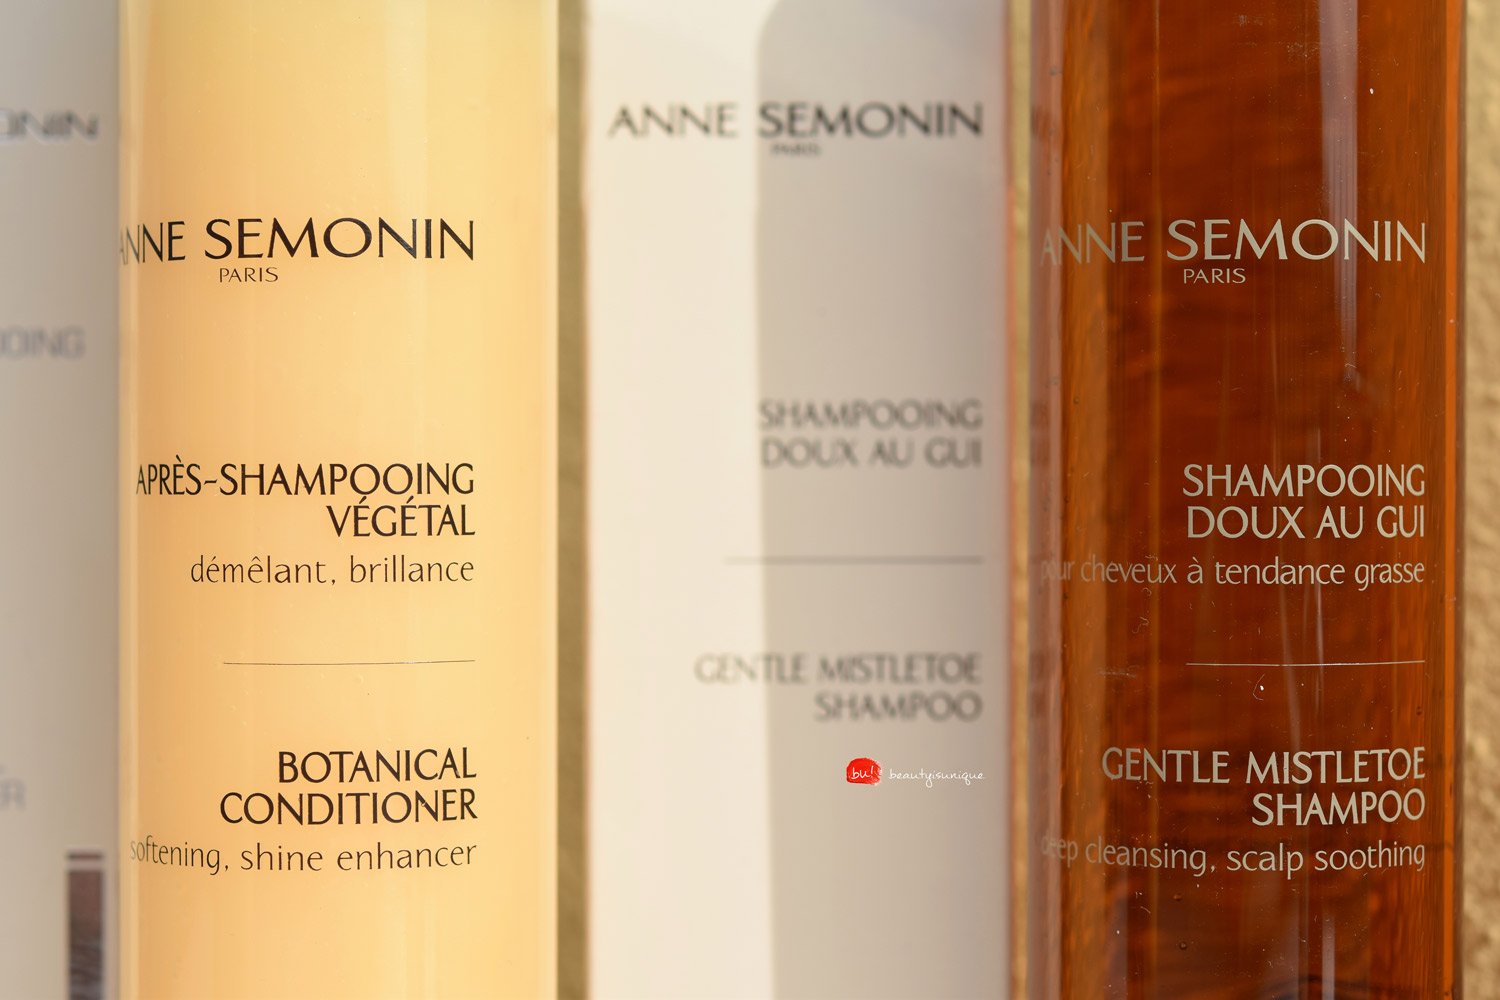 Anne-semonin-botanical-conditioner